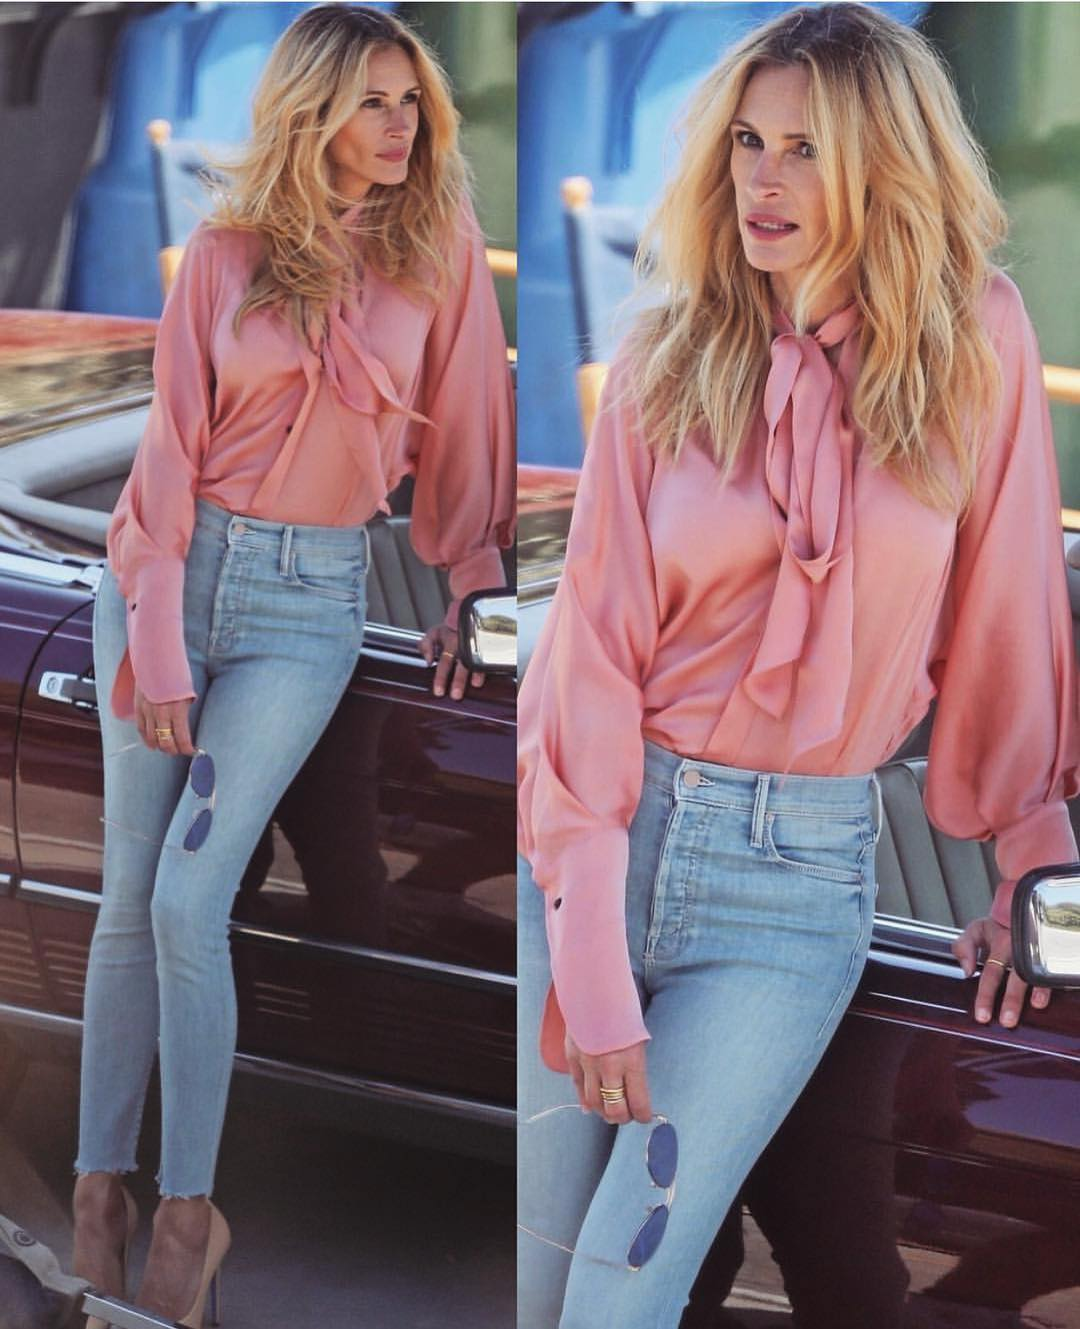 1970 Street Style: Pink Blouse With A Bow And Wash Blue Skinny Jeans 2020